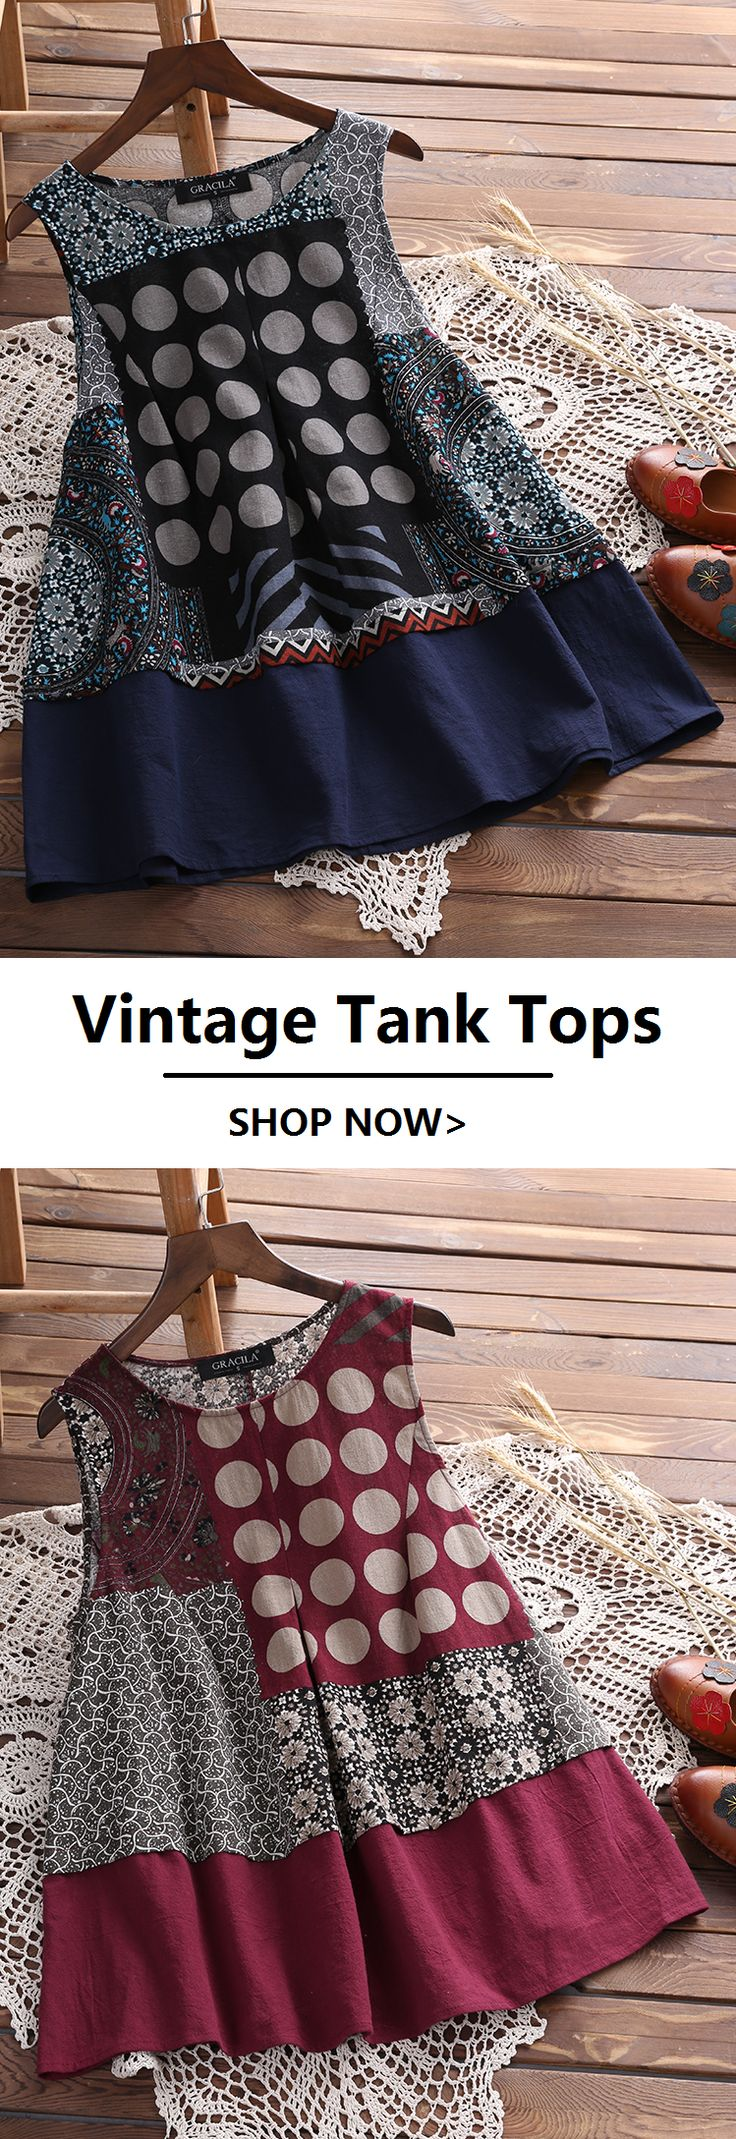 248 Best Images On Pinterest Batik Dress Fashion And Candy Ruffle Tee Aneka Warna Plus Sizes Ethnic Printed Vintage O Neck Tank Topssizes From Us 8 To